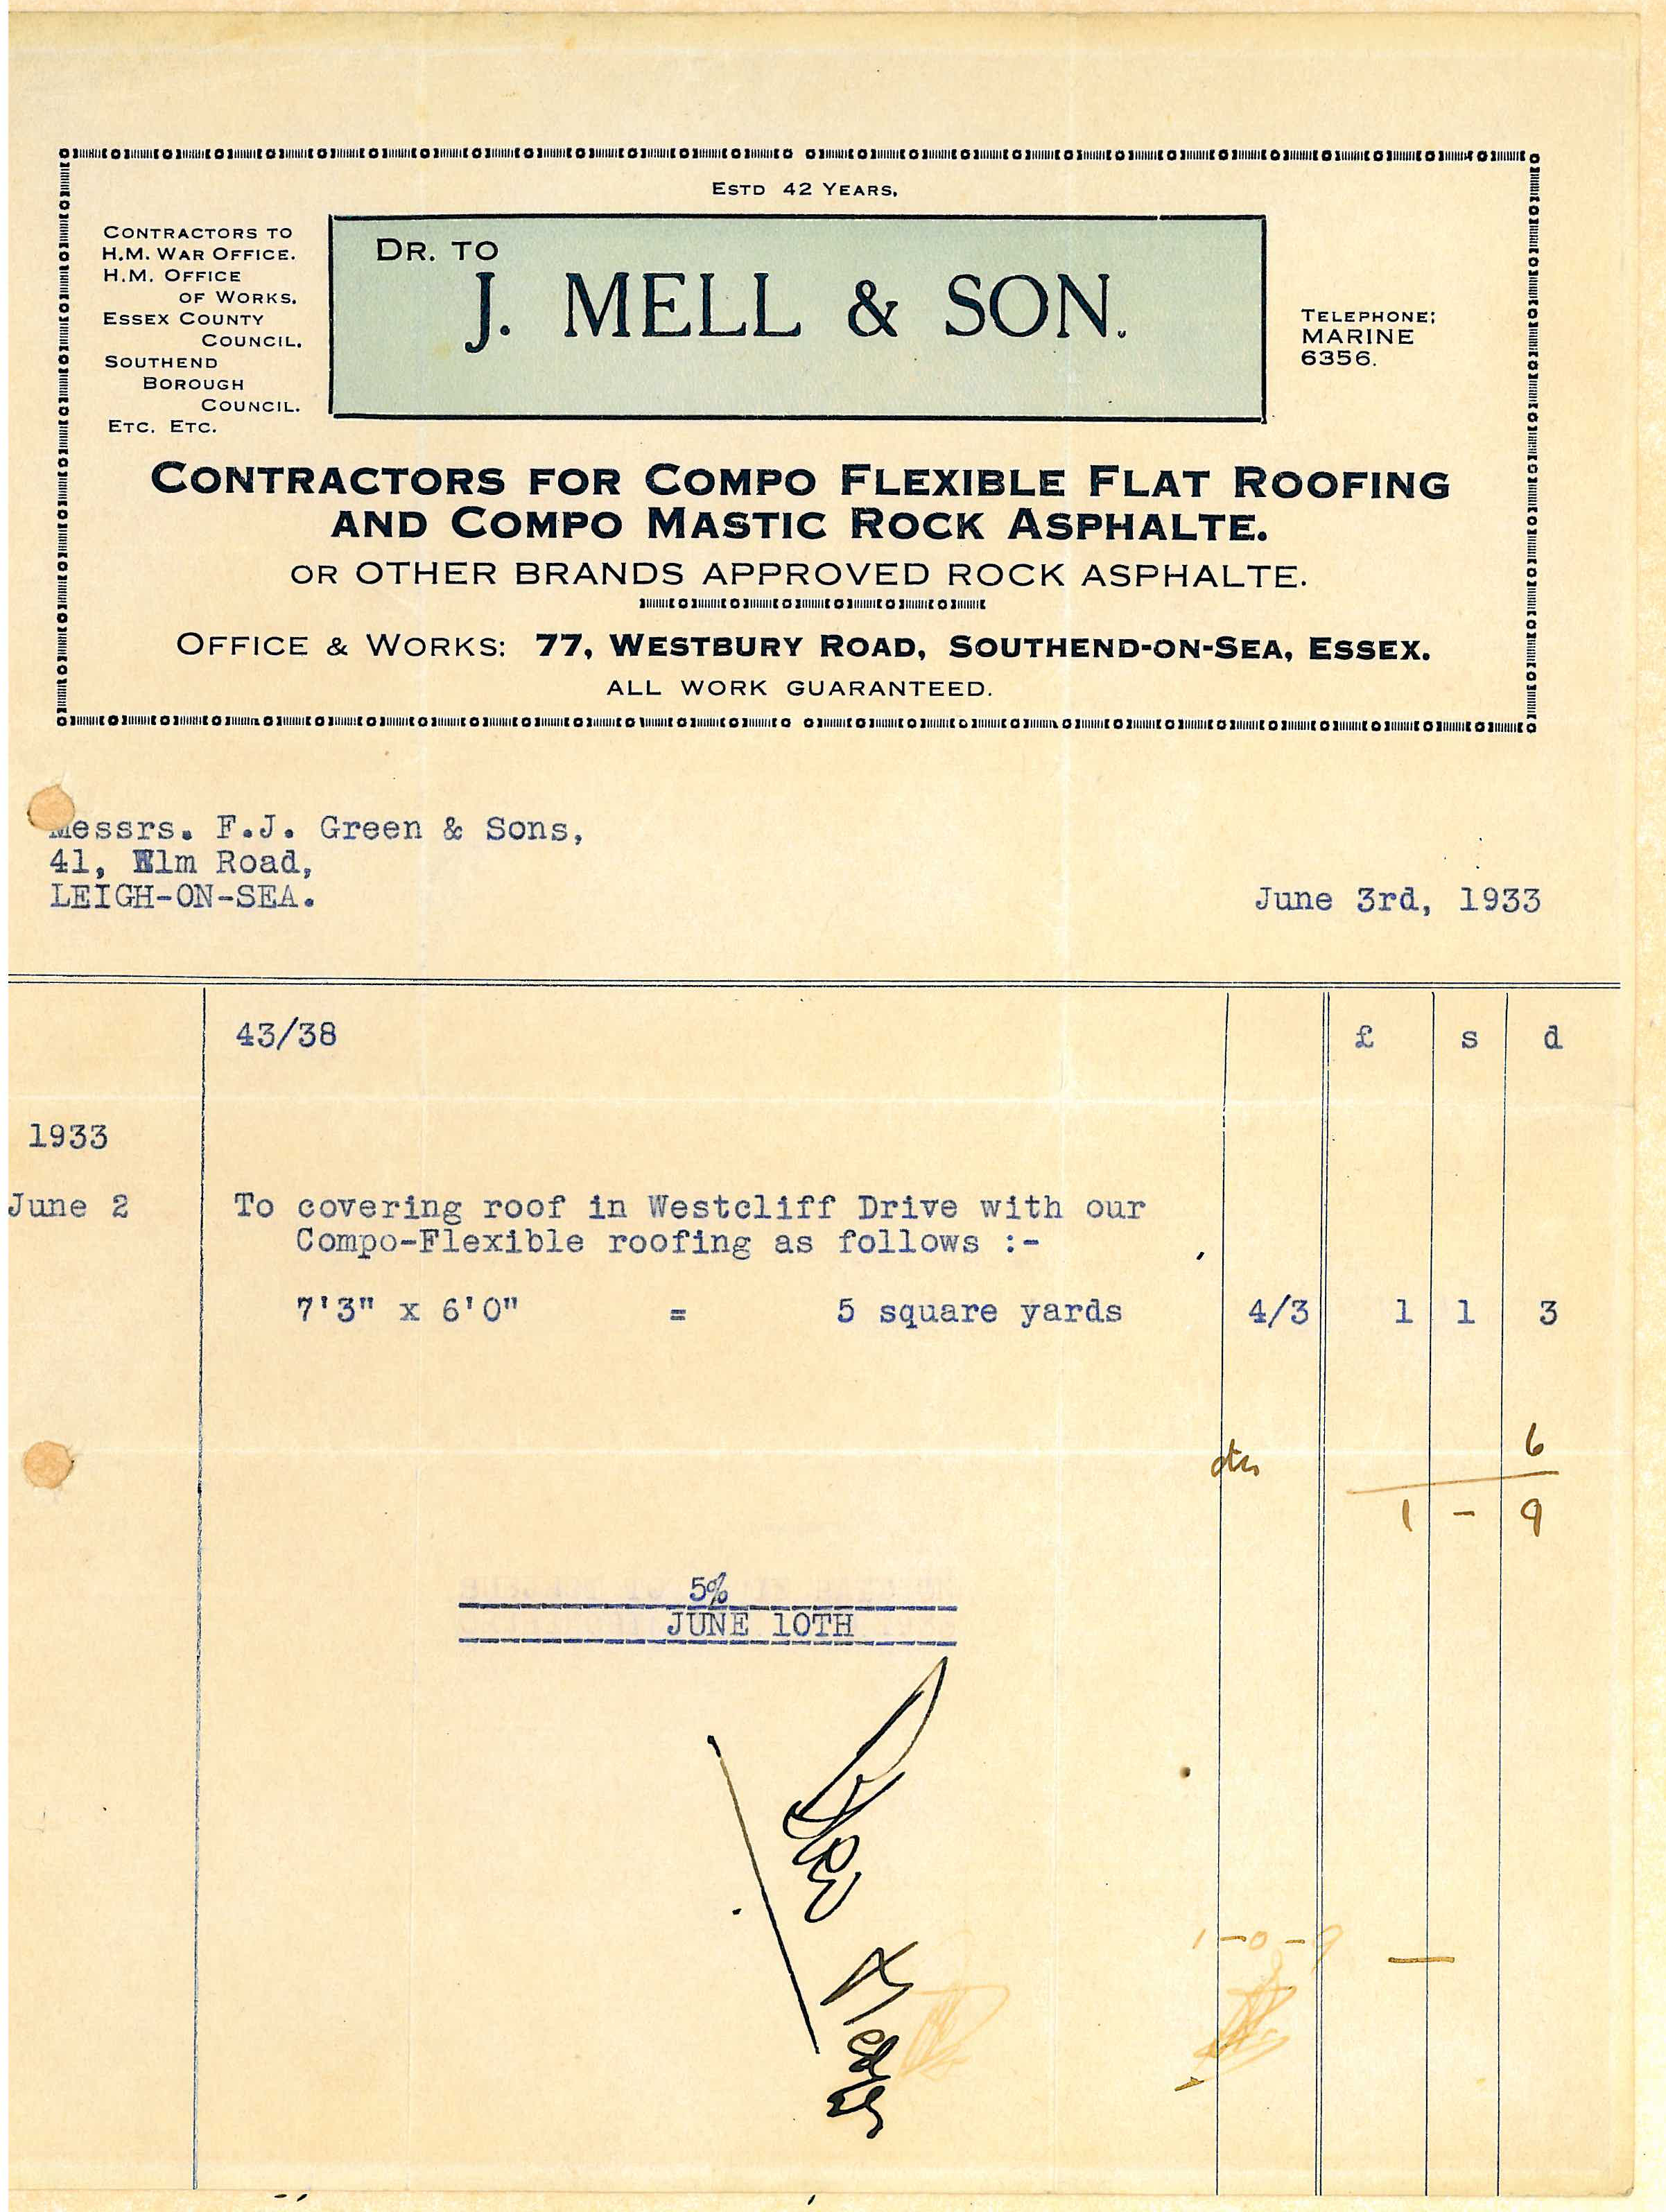 mells invoice 1933 mells roofing flat roofing essex flat mells invoice 1933 mells roofing flat roofing essex flat roofing east anglia flat roof repair